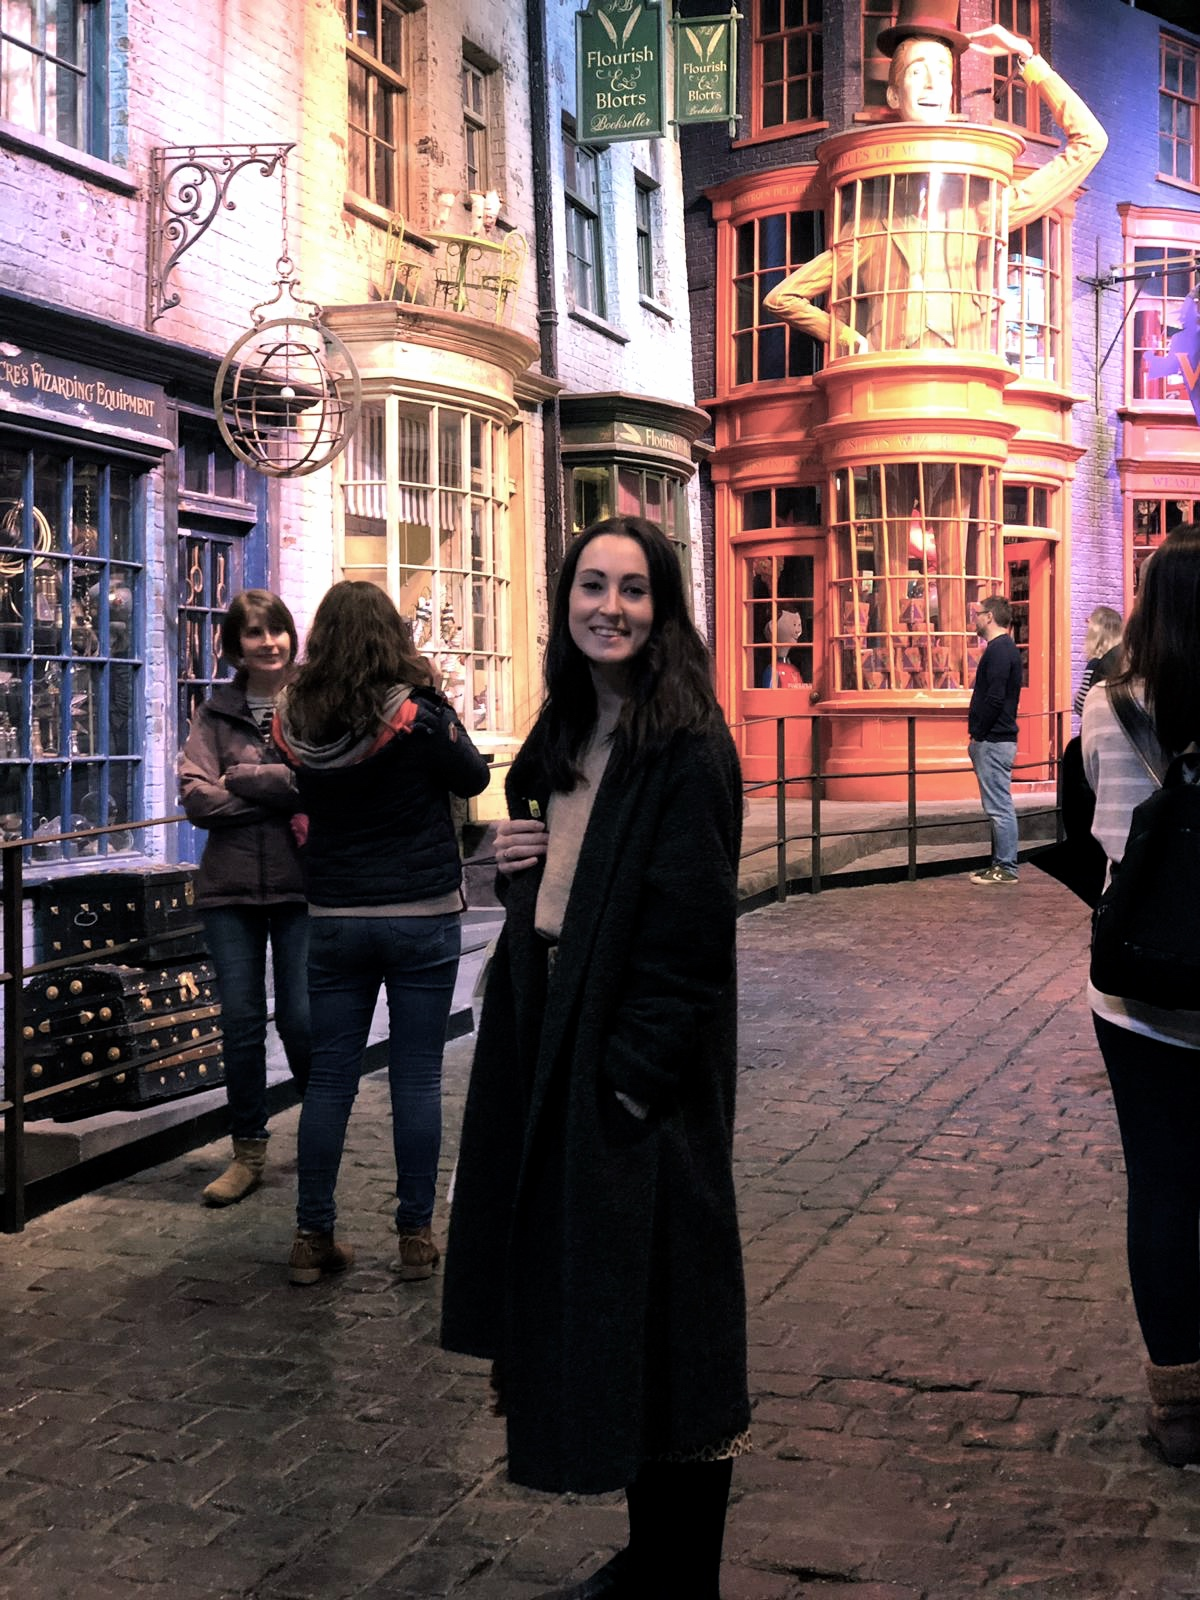 Standing in Diagon Alley